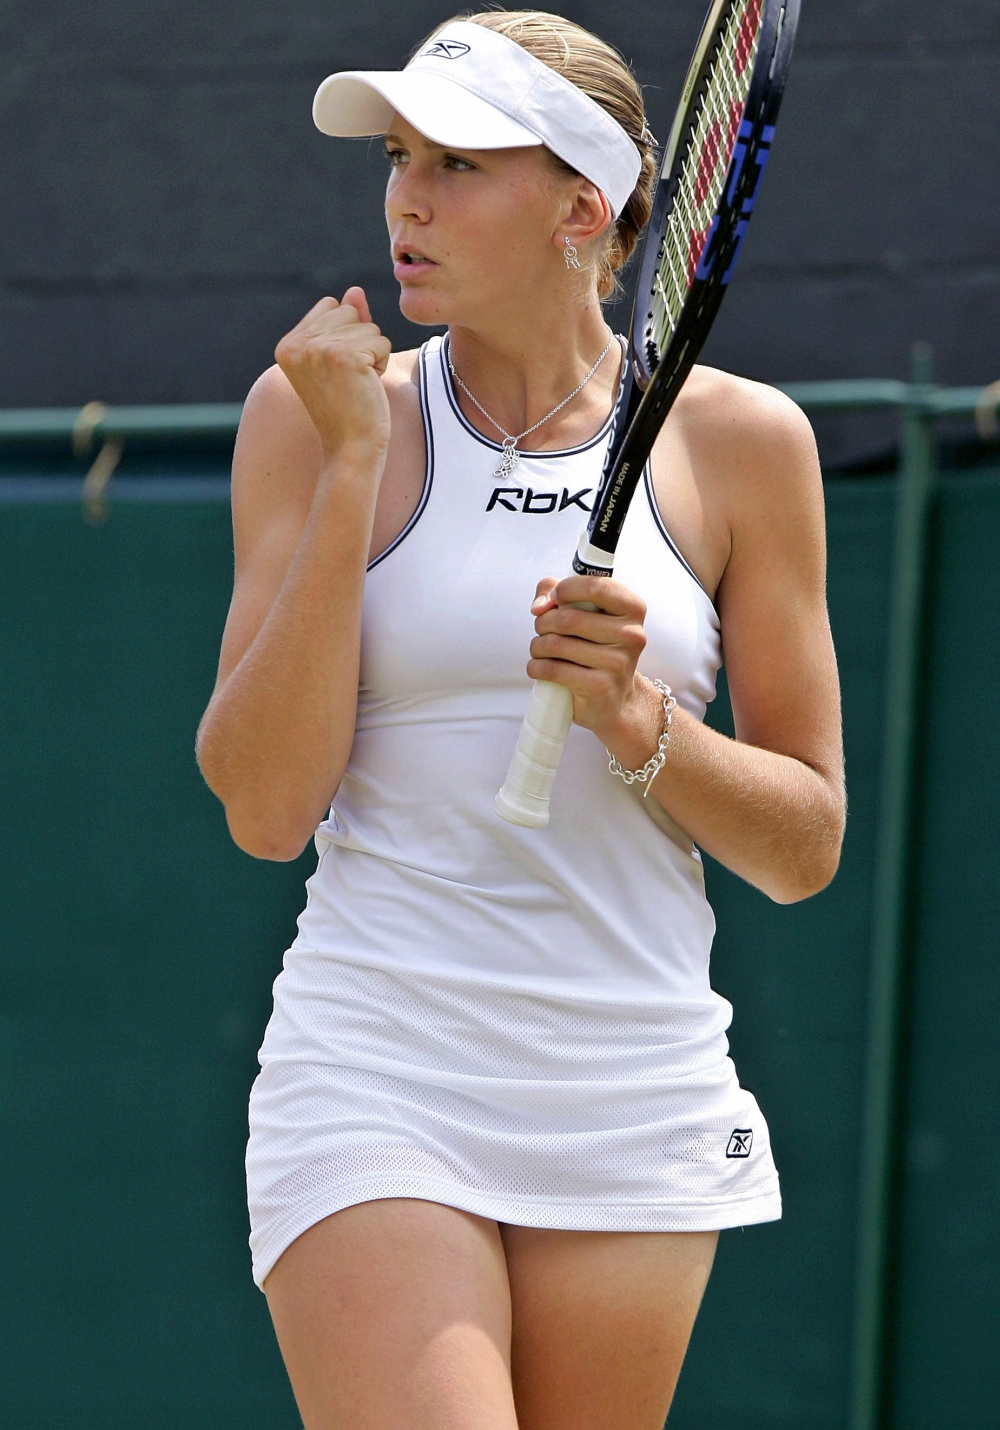 Female hot player tennis women